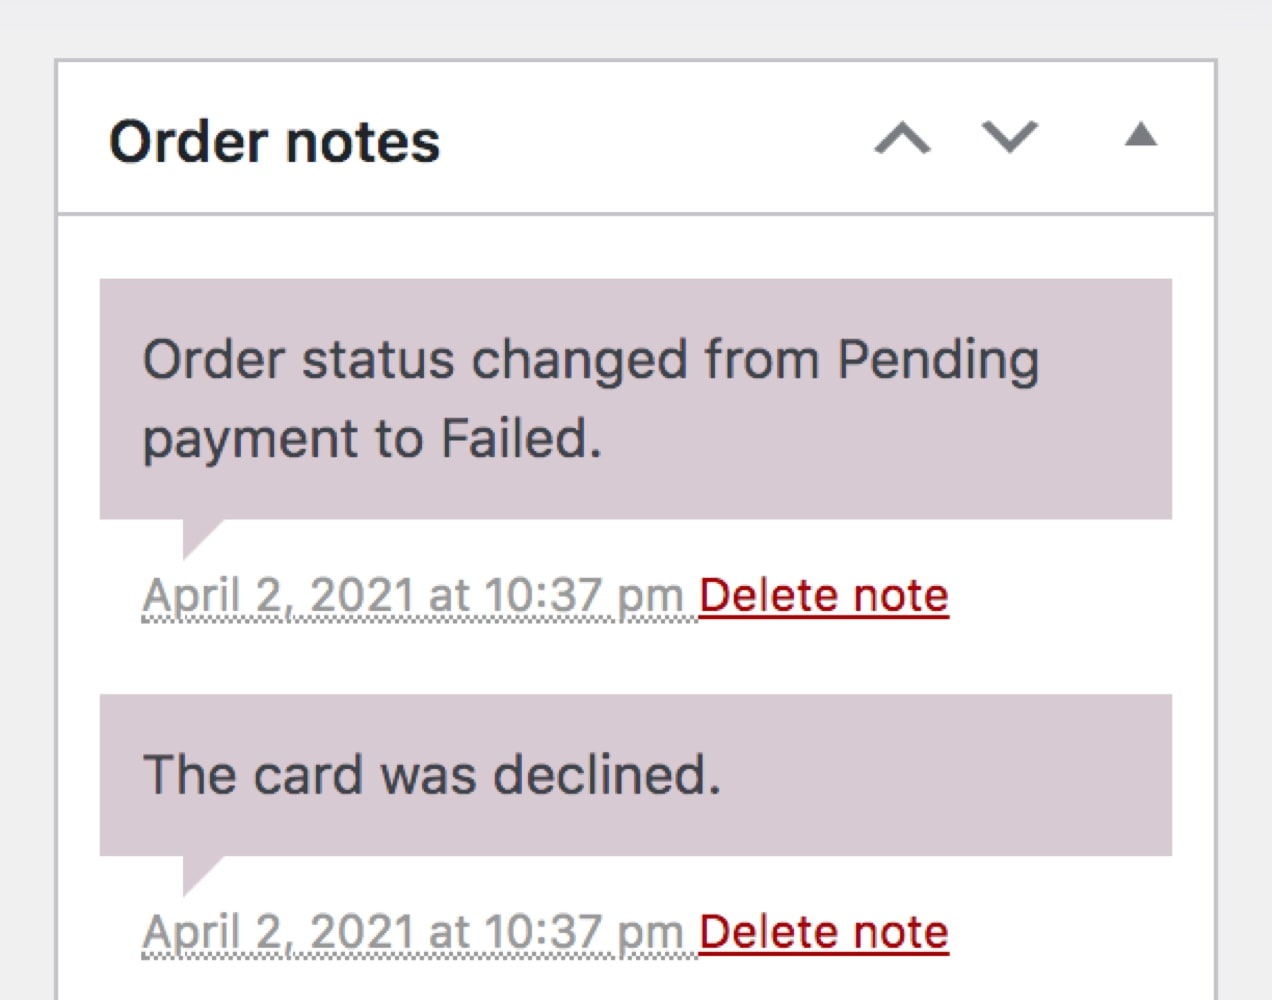 order note showing a declined card and failed order